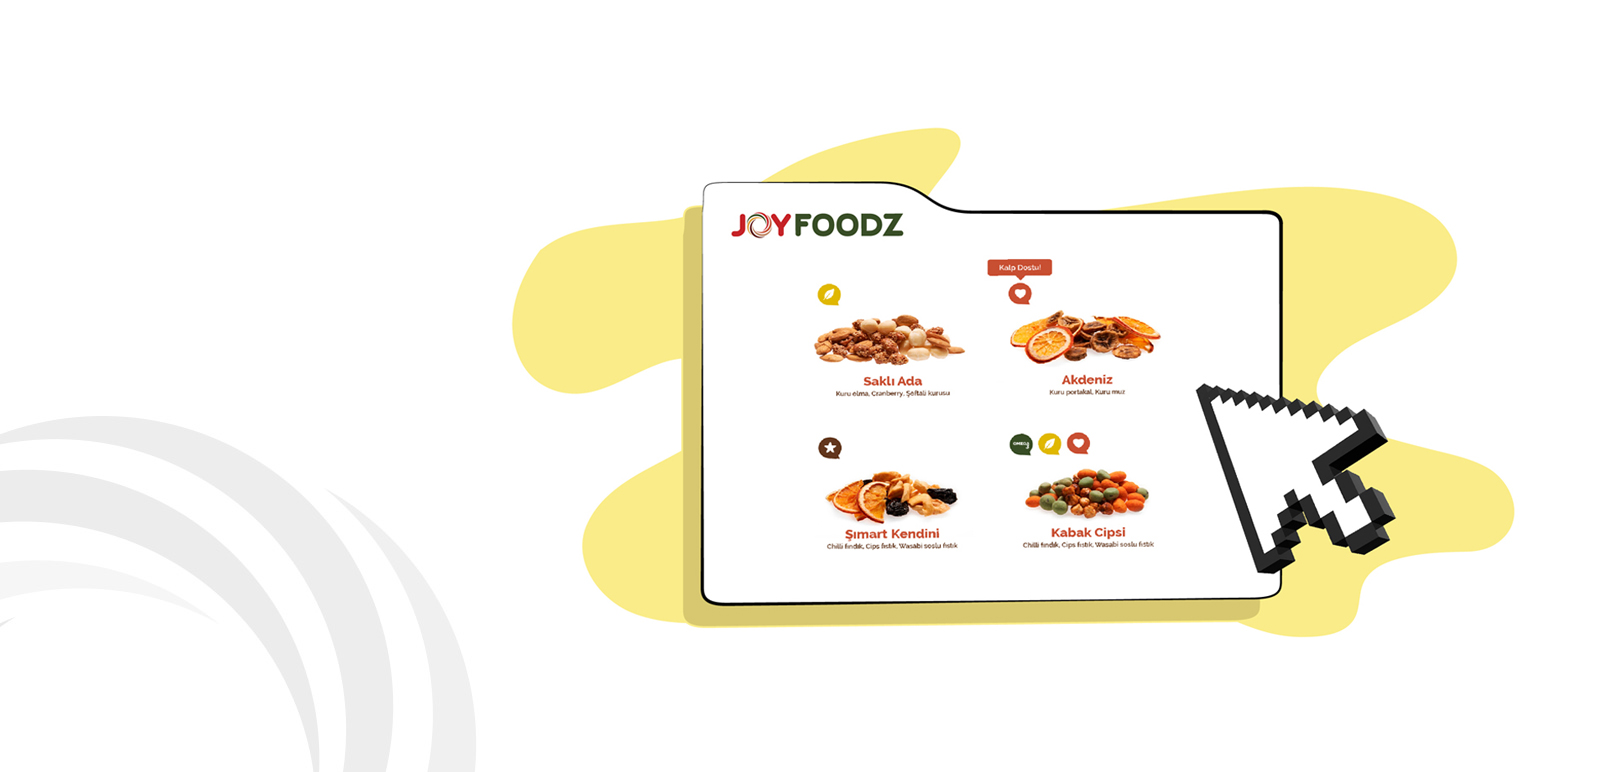 Joyfoodz Animation, Illustration 10